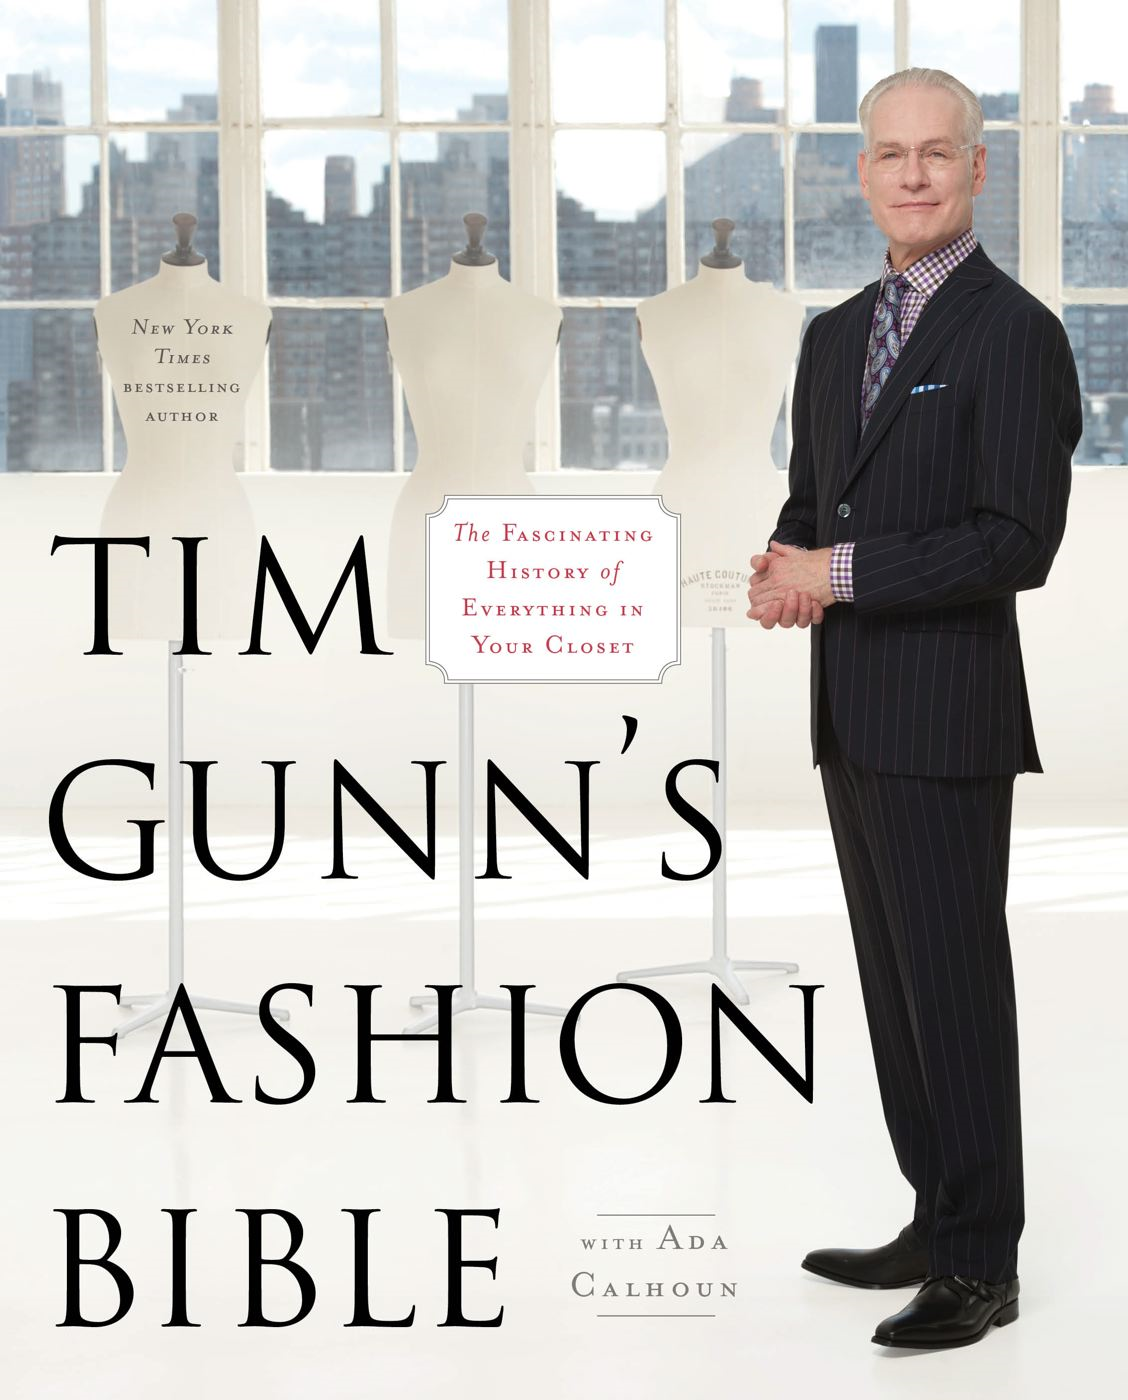 Tim Gunn's Fashion Bible By: Ada Calhoun,Tim Gunn